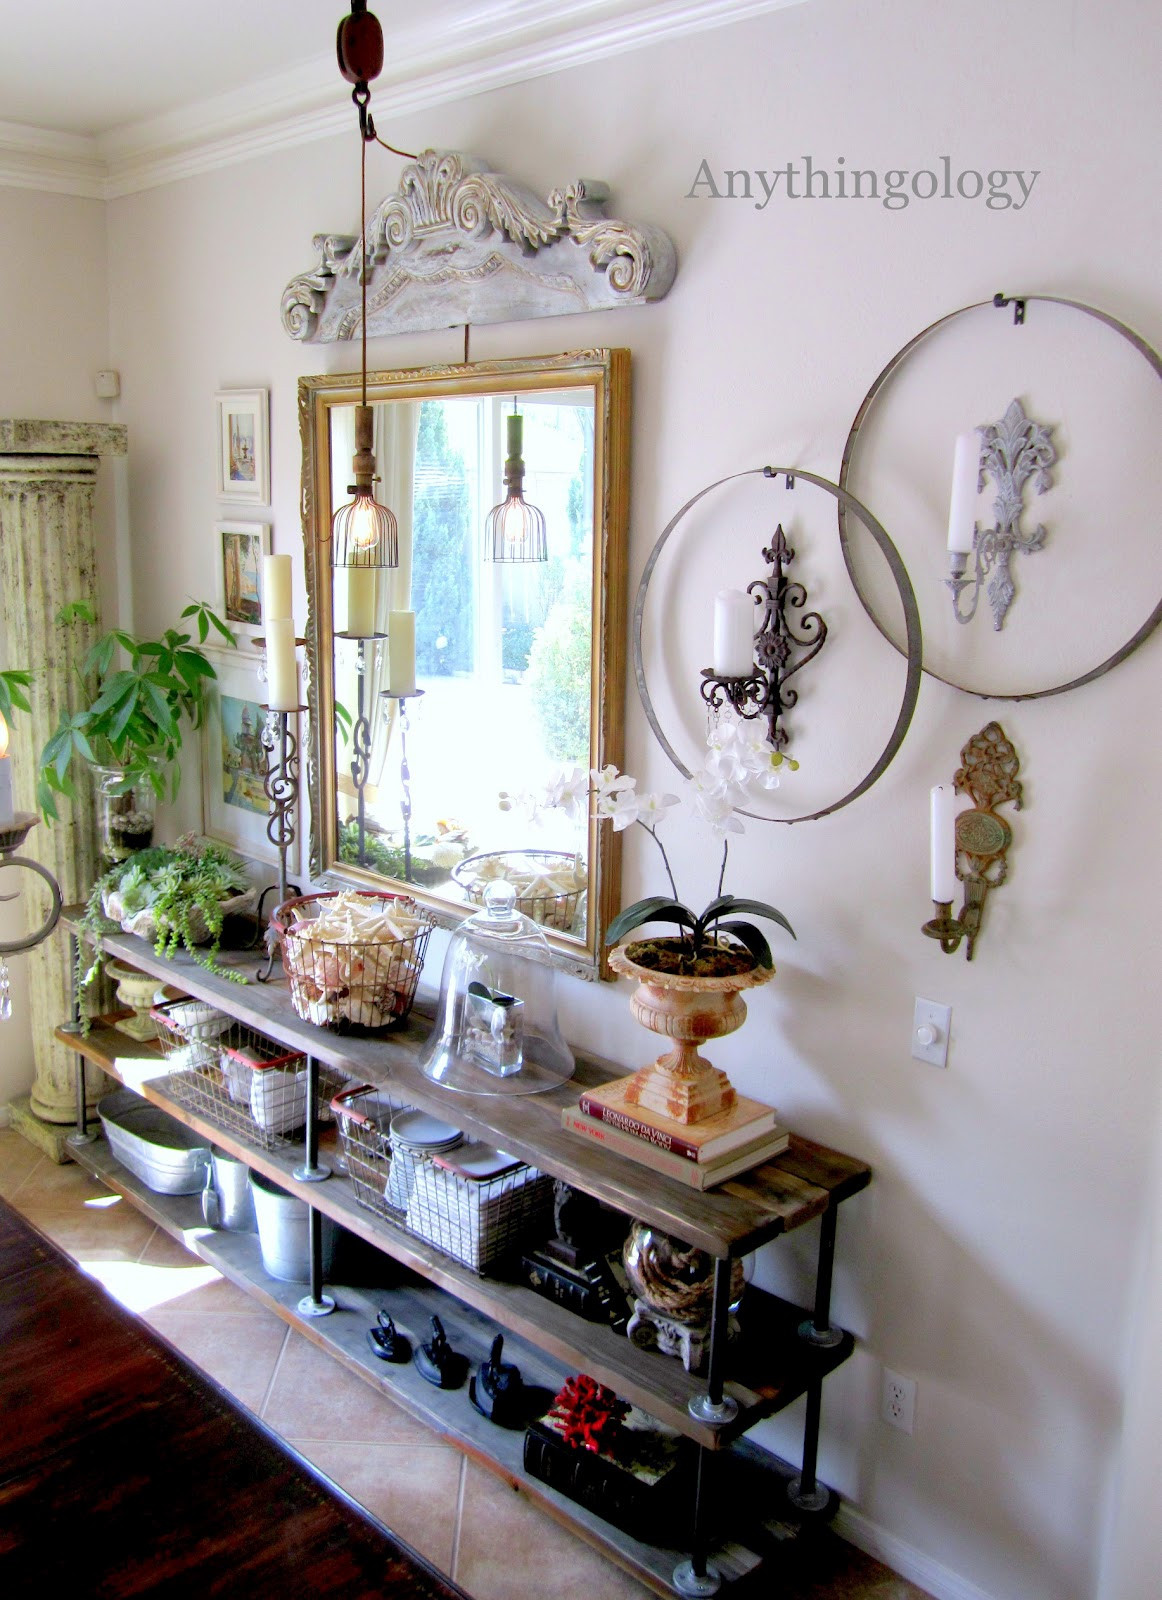 Best ideas about DIY Industrial Shelves . Save or Pin Anythingology DIY Industrial Shelves Now.